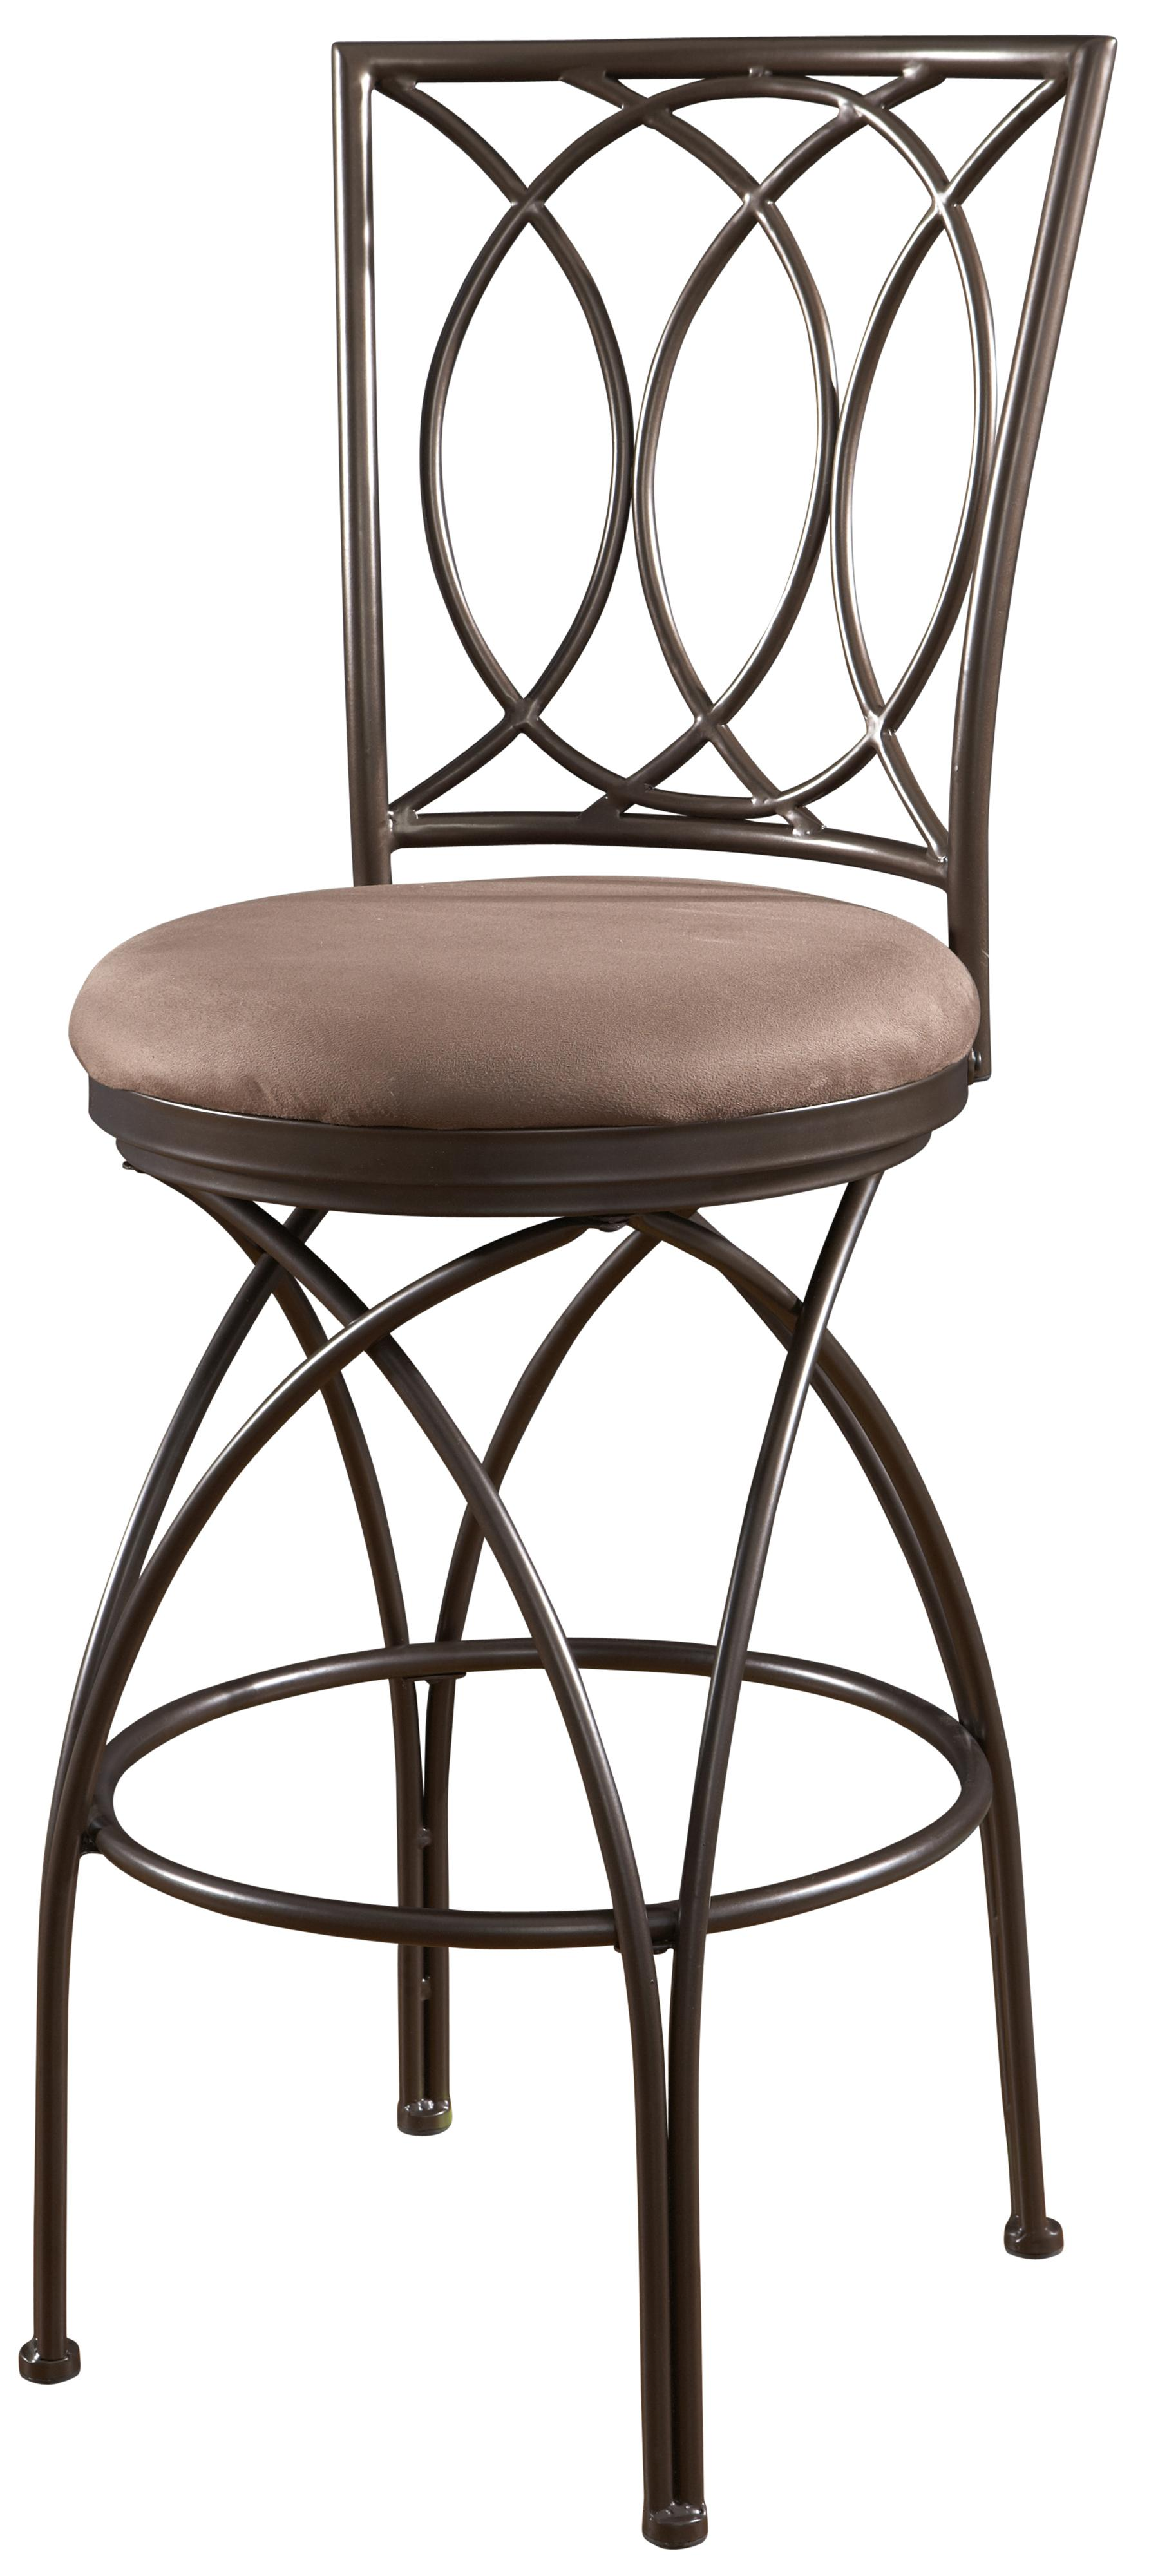 Powell Big and Tall Metal Crossed Legs Bar Stool - Item Number: 586-851